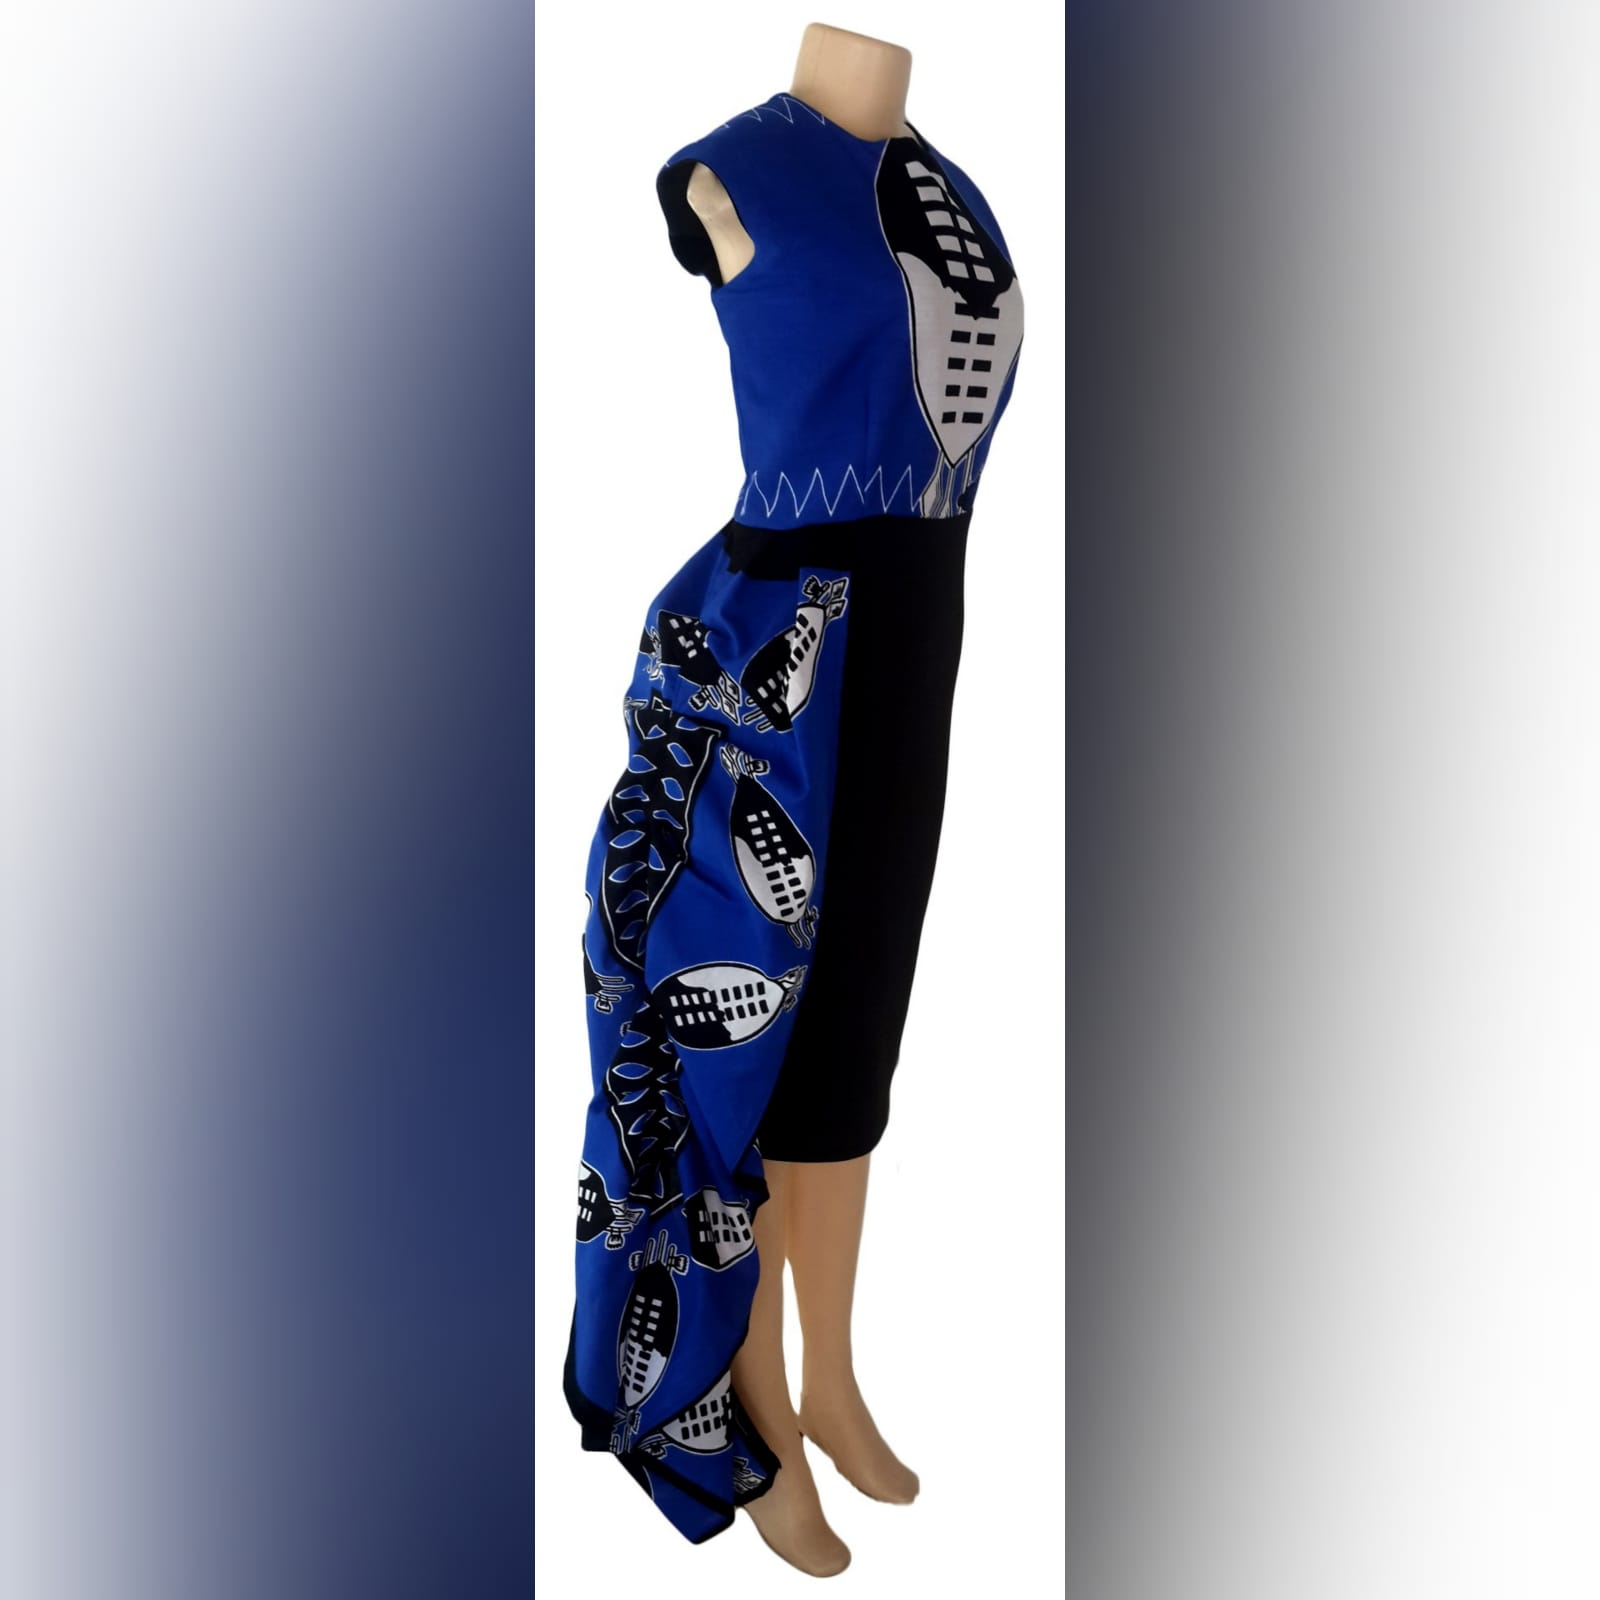 Blue swati knee length dress with hip frill 4 modern traditional knee-length fitted swati dress in blue, black and white. With a hip frill. With matching black golf shirt detailed with swati fabric. Traditional wedding attire.